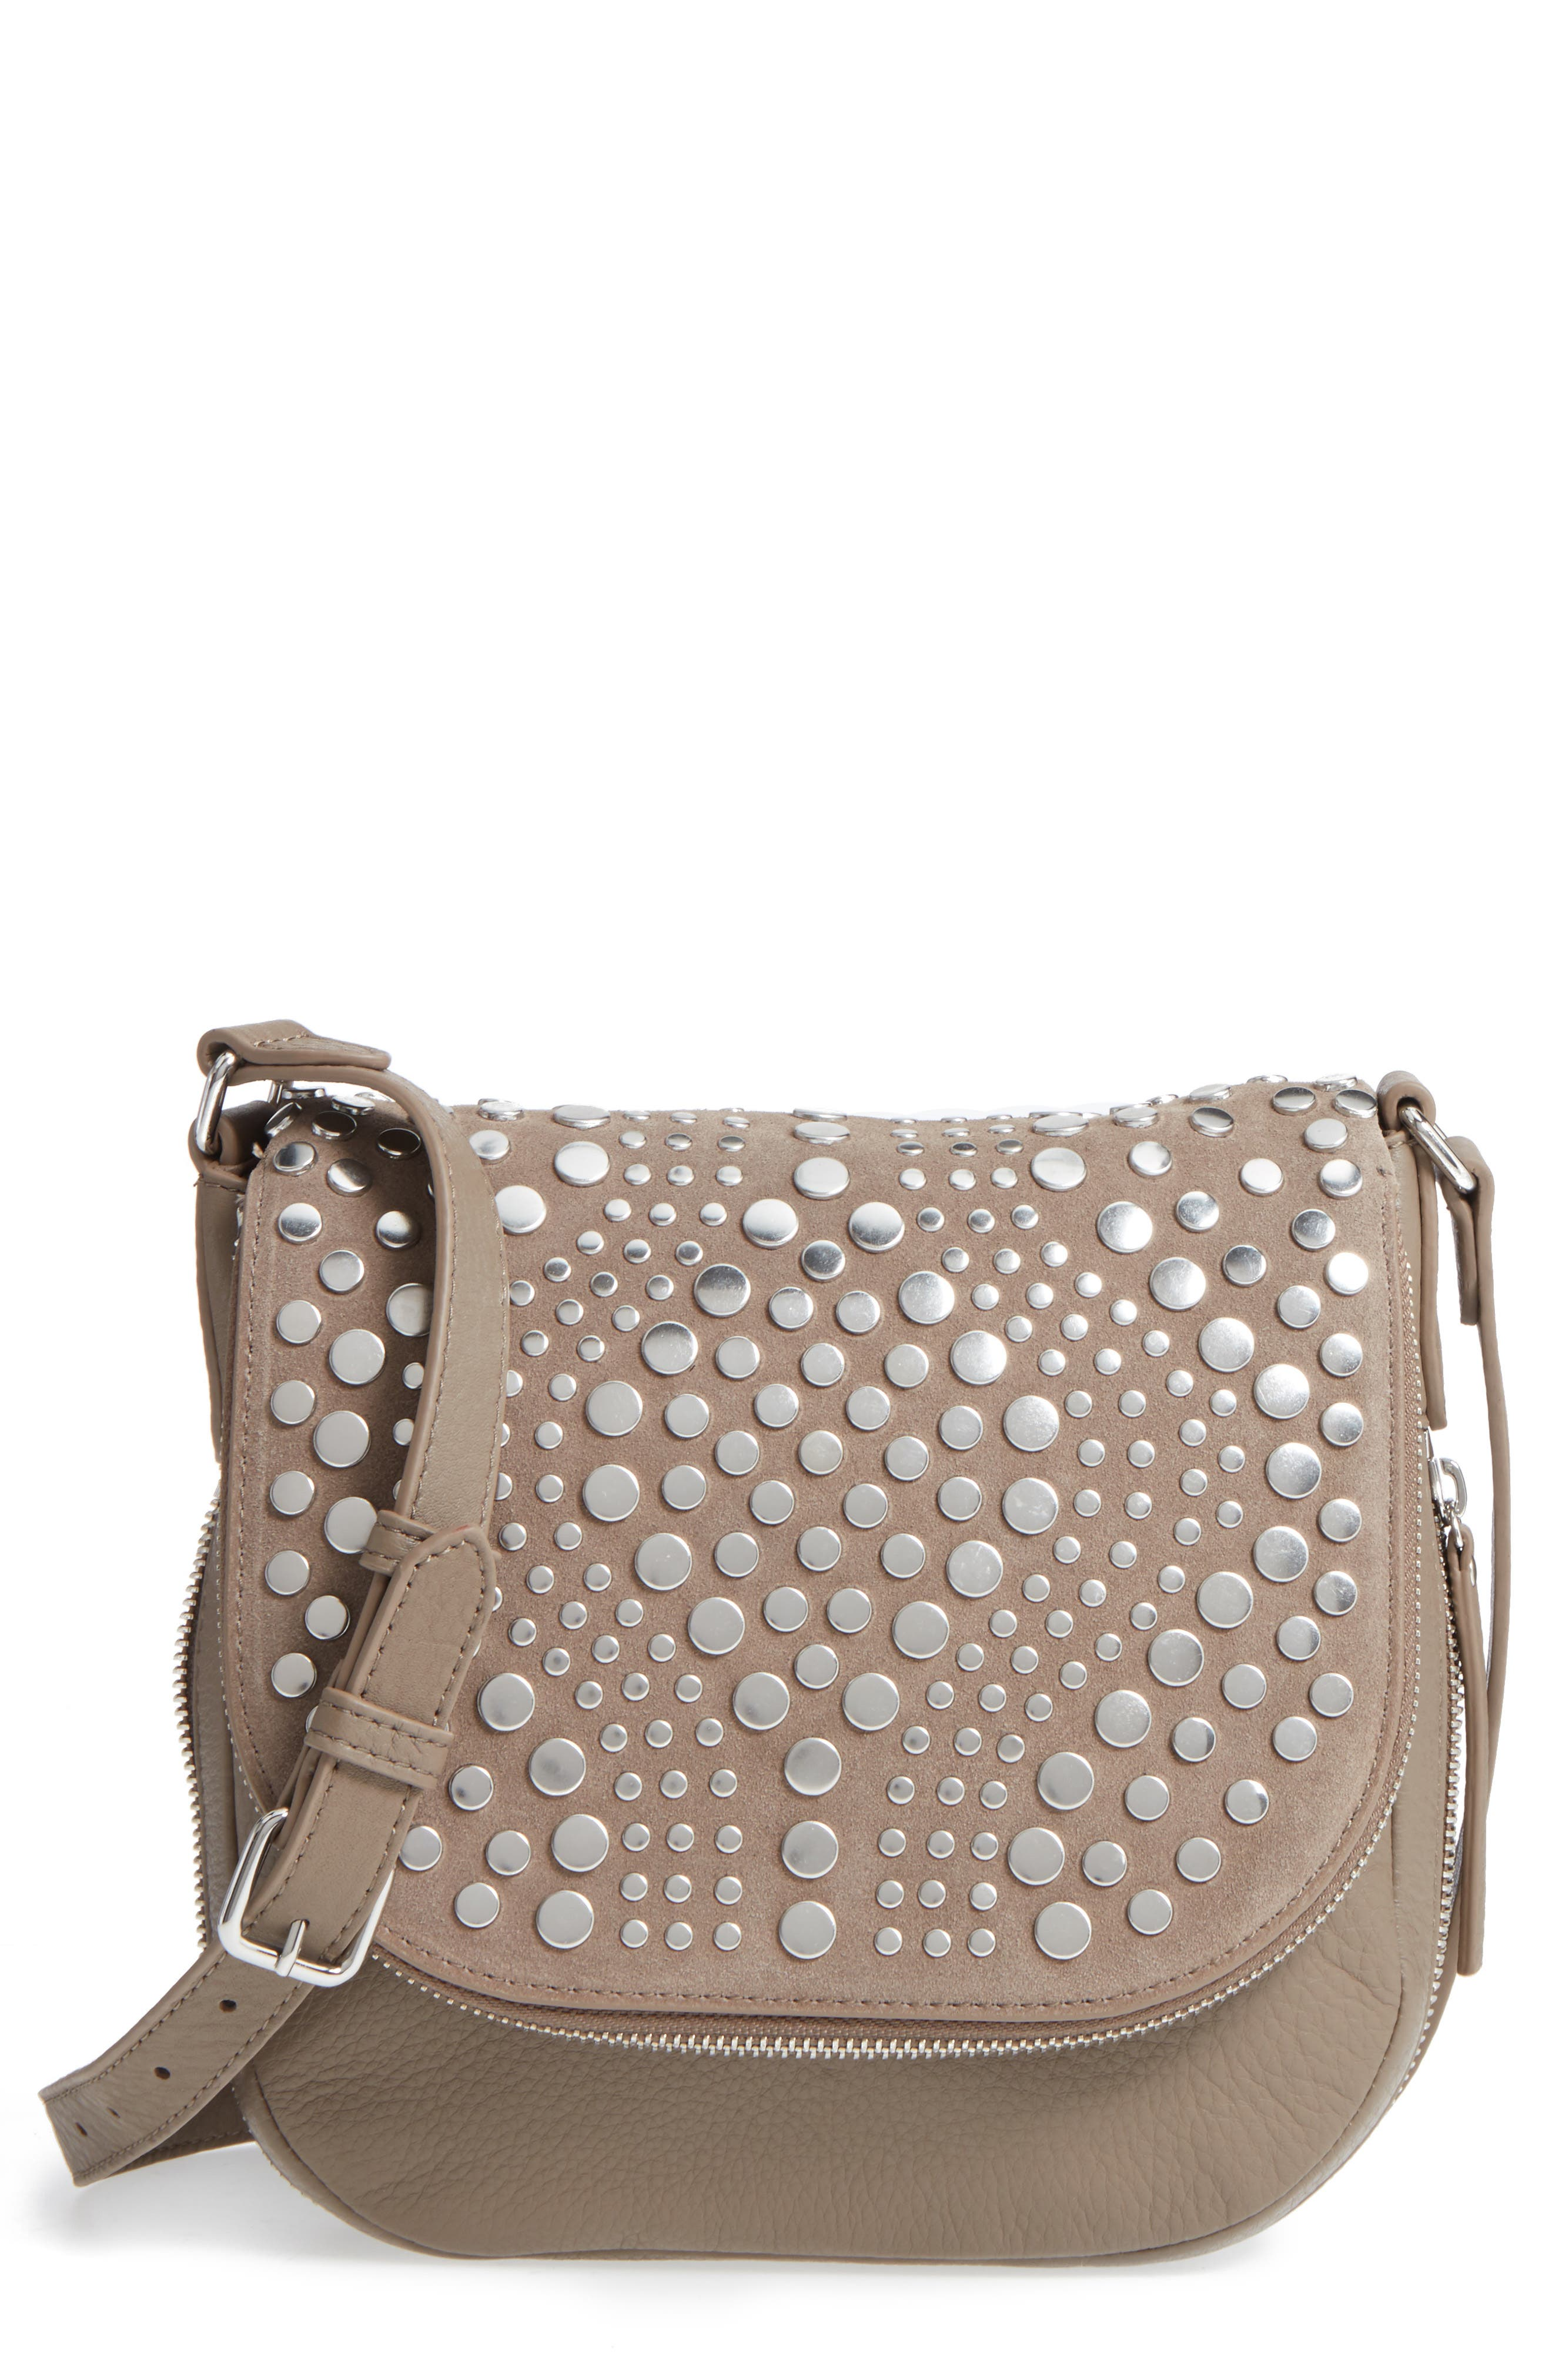 Alternate Image 1 Selected - Vince Camuto Bonny Studded Leather Crossbody Bag